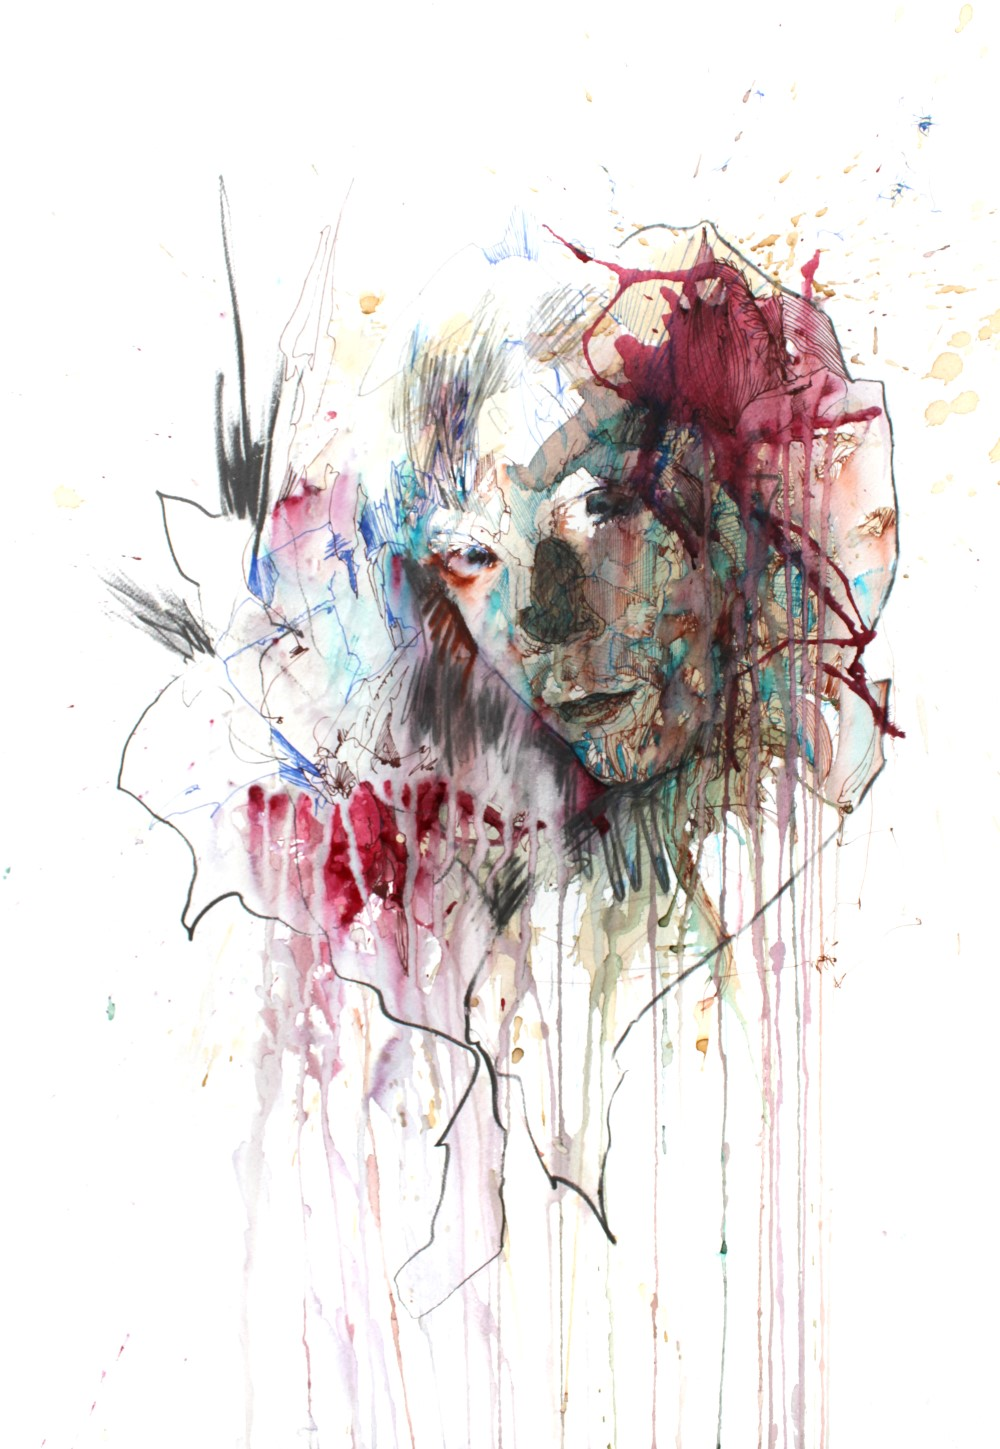 Somewhere by Carne Griffiths